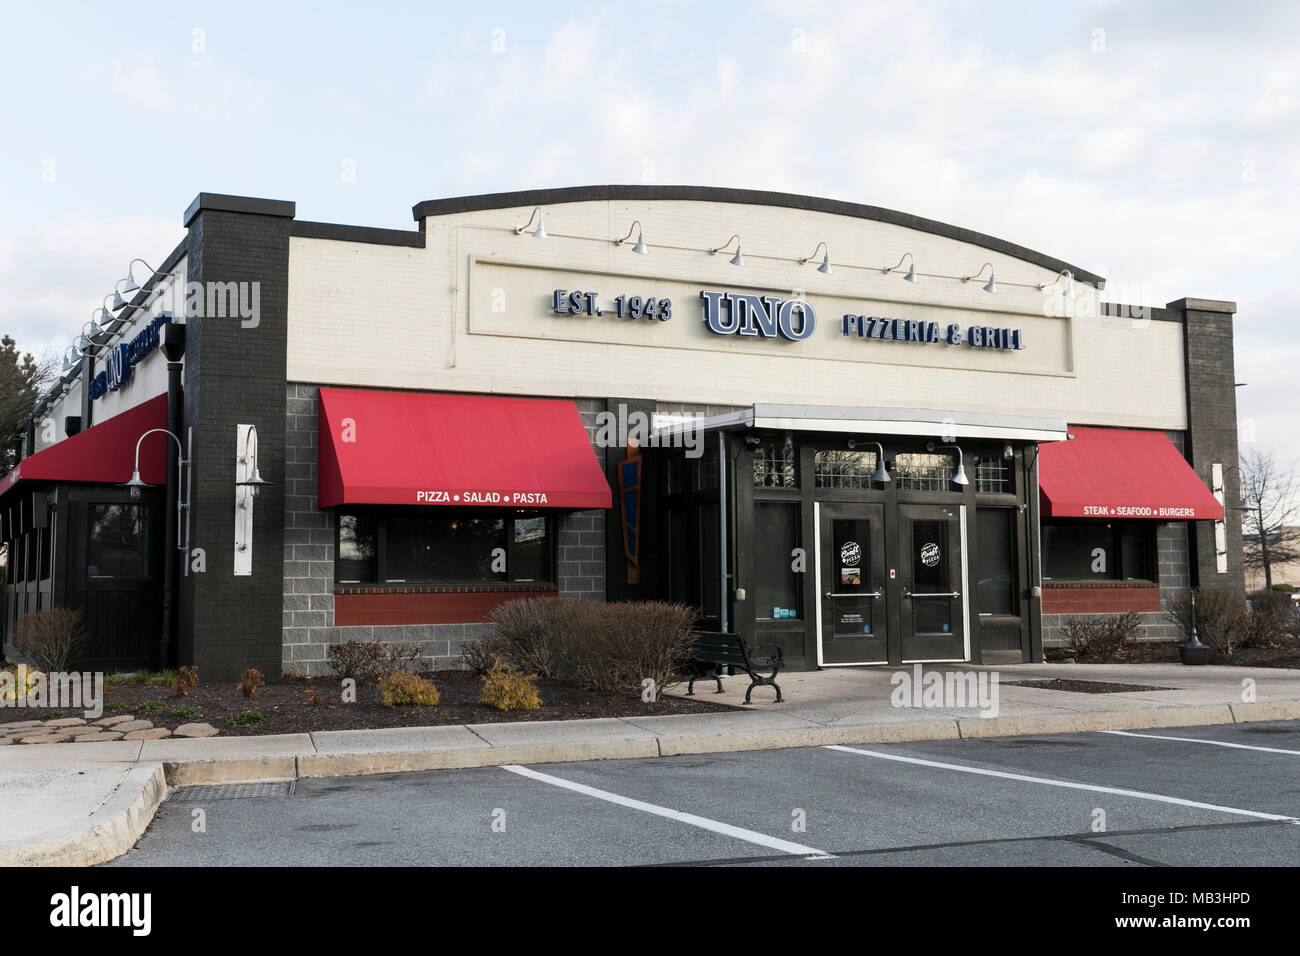 A Uno Pizzeria & Grill restaurant location in Hagerstown, Maryland on April 5, 2018. - Stock Image